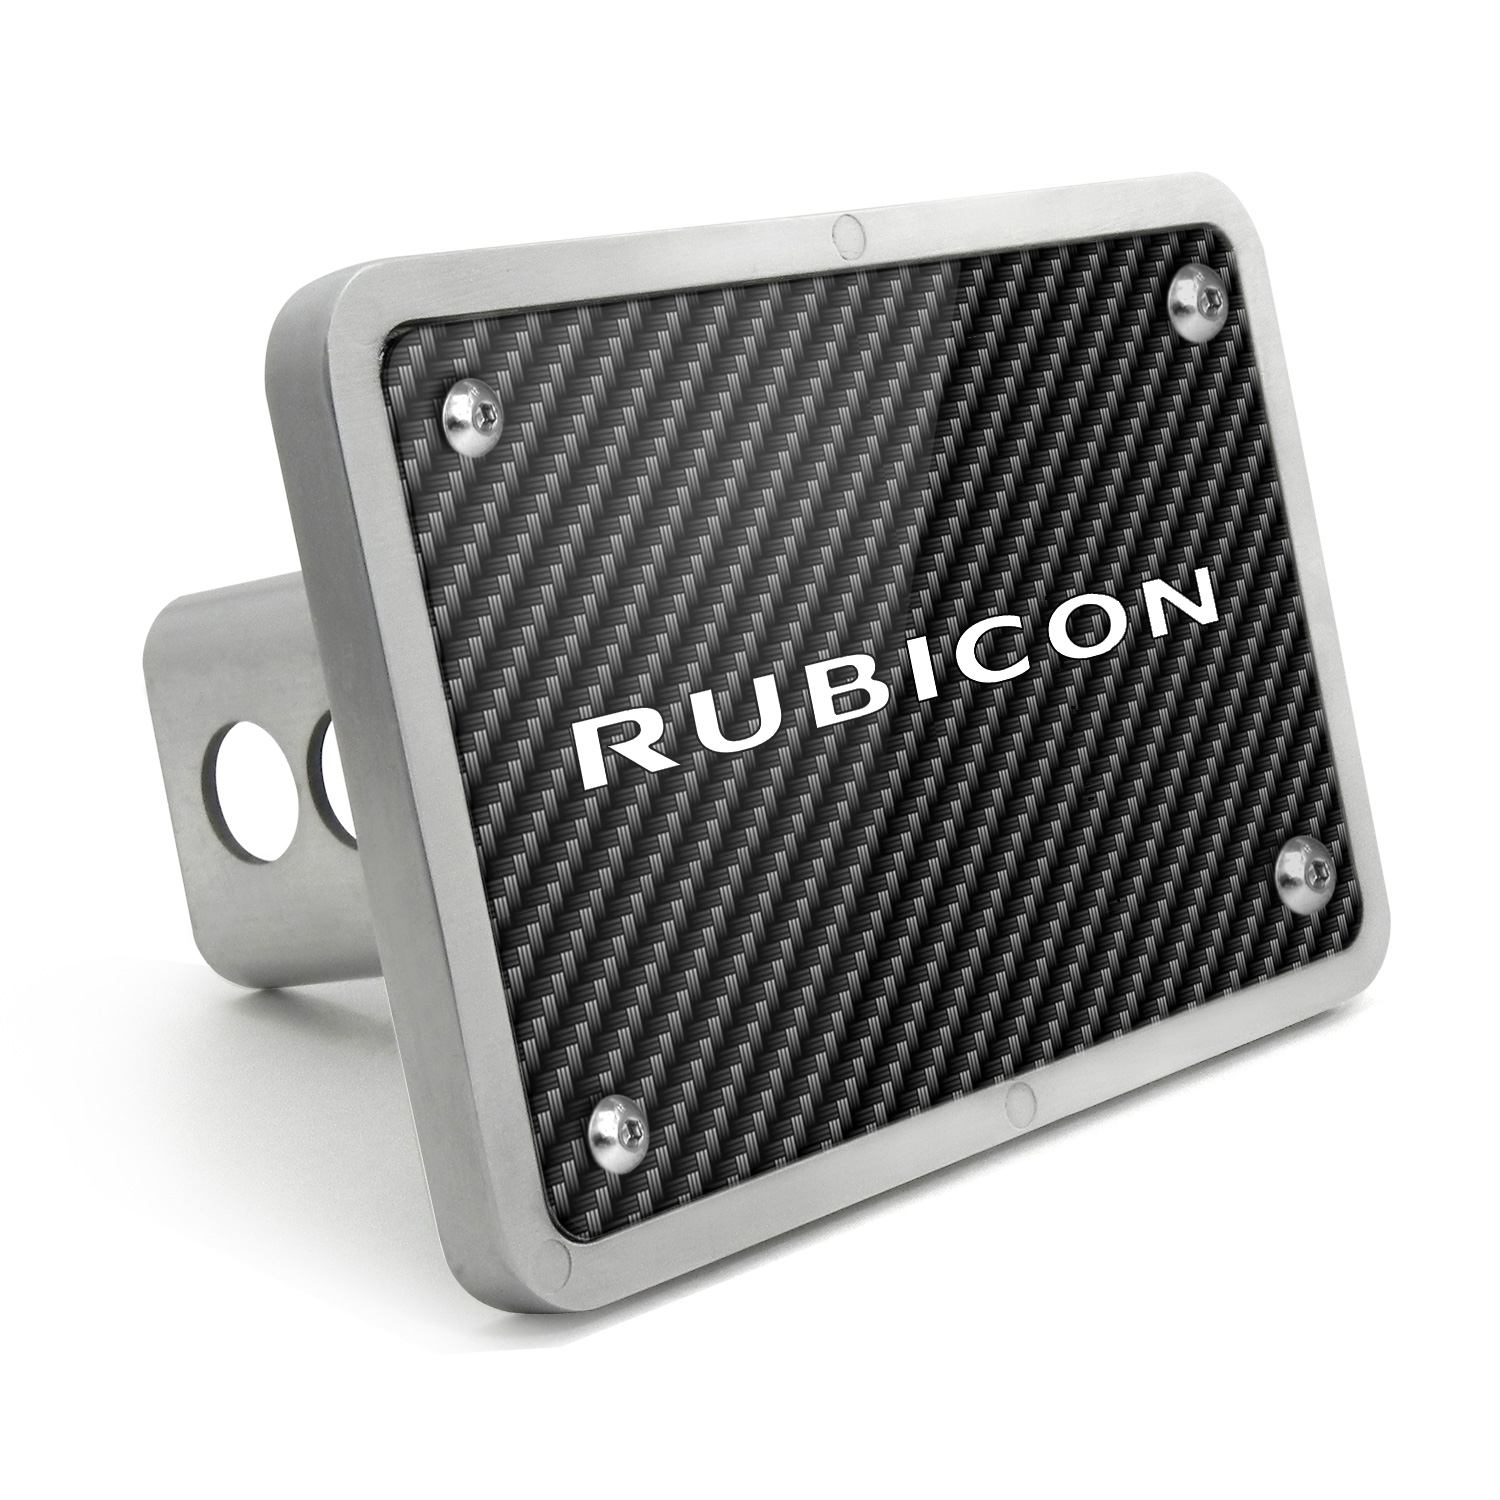 Jeep Rubicon UV Graphic Carbon Fiber Texture Billet Aluminum 2 inch Tow Hitch Cover